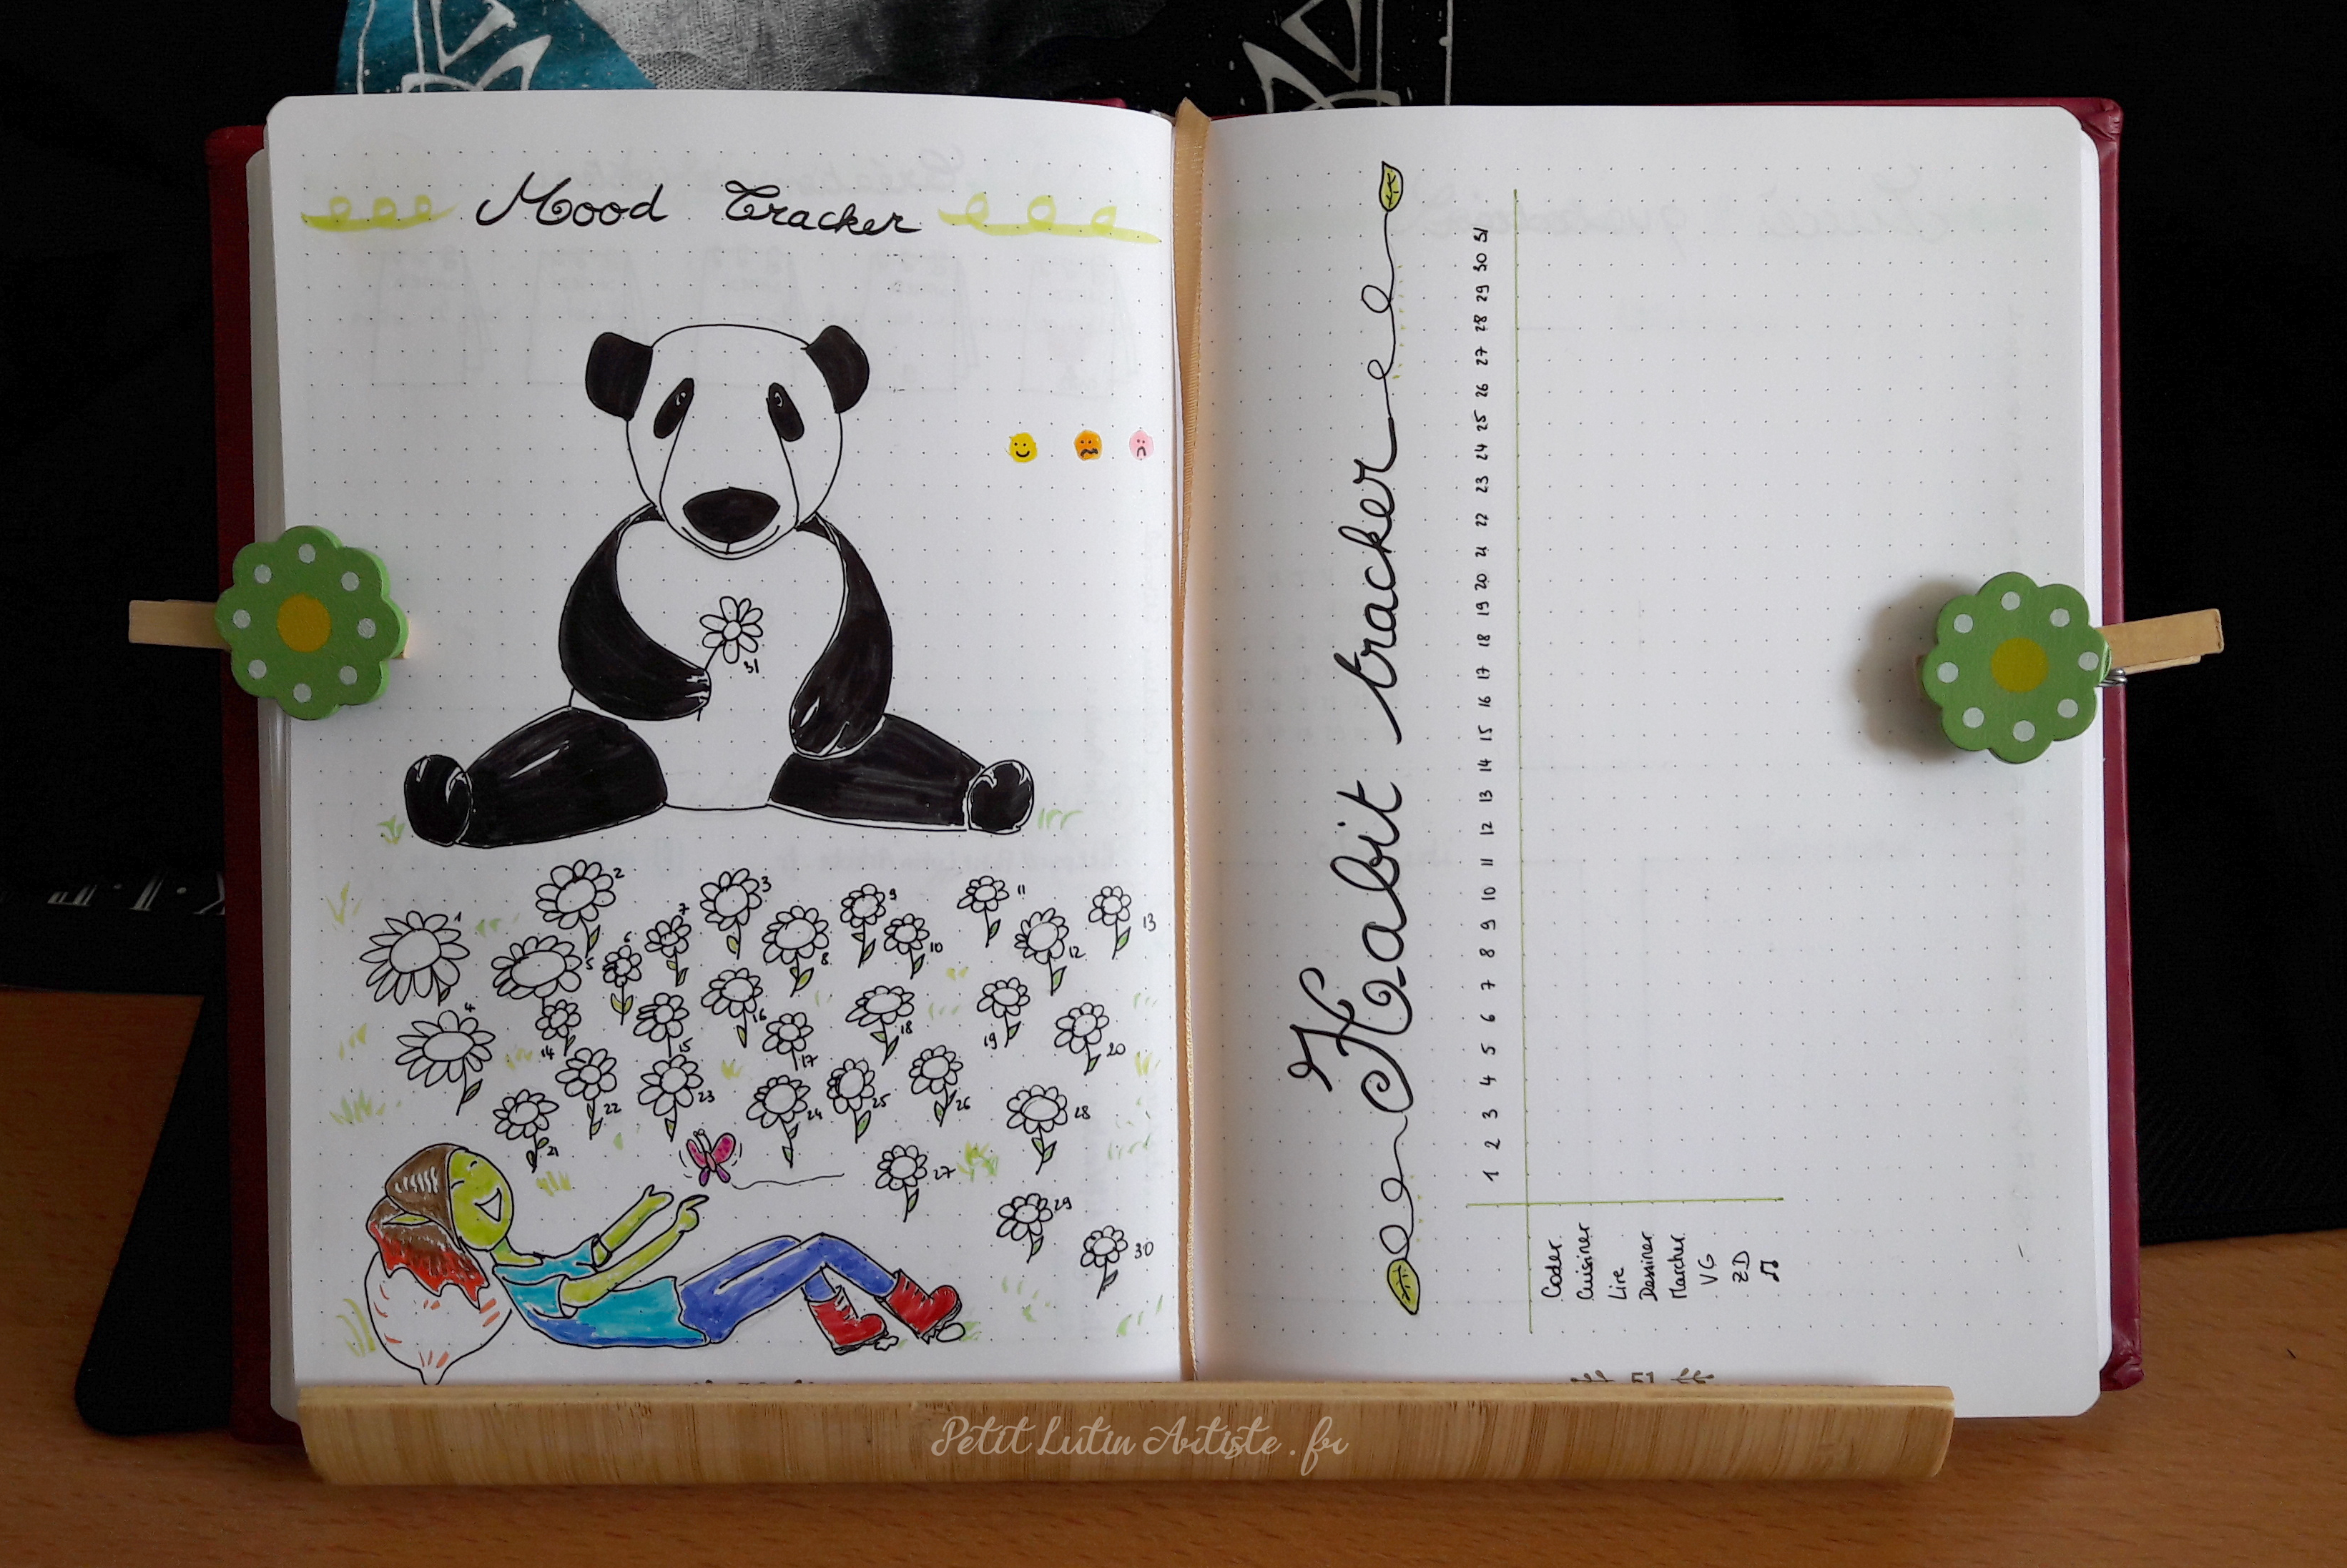 Belette Journal, mon bullet journal de mars 2019 - mood tracker et habit tracker